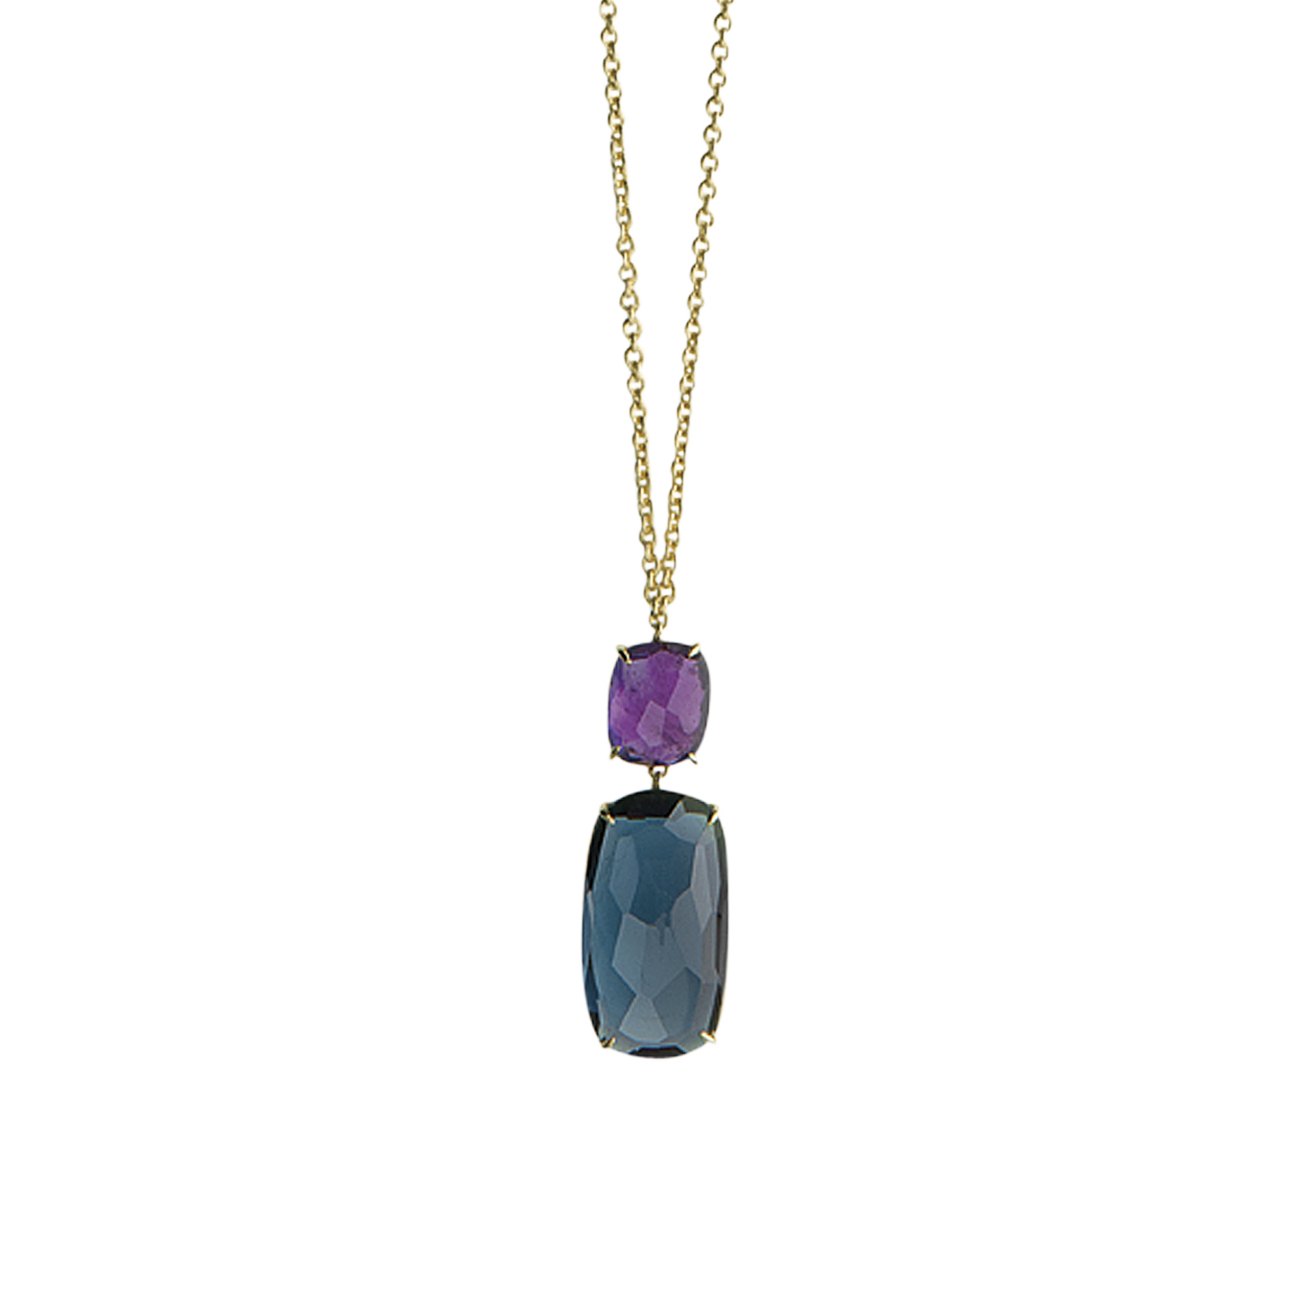 Marco Bicego Murano Gold, Topaz & Amethyst Pendant